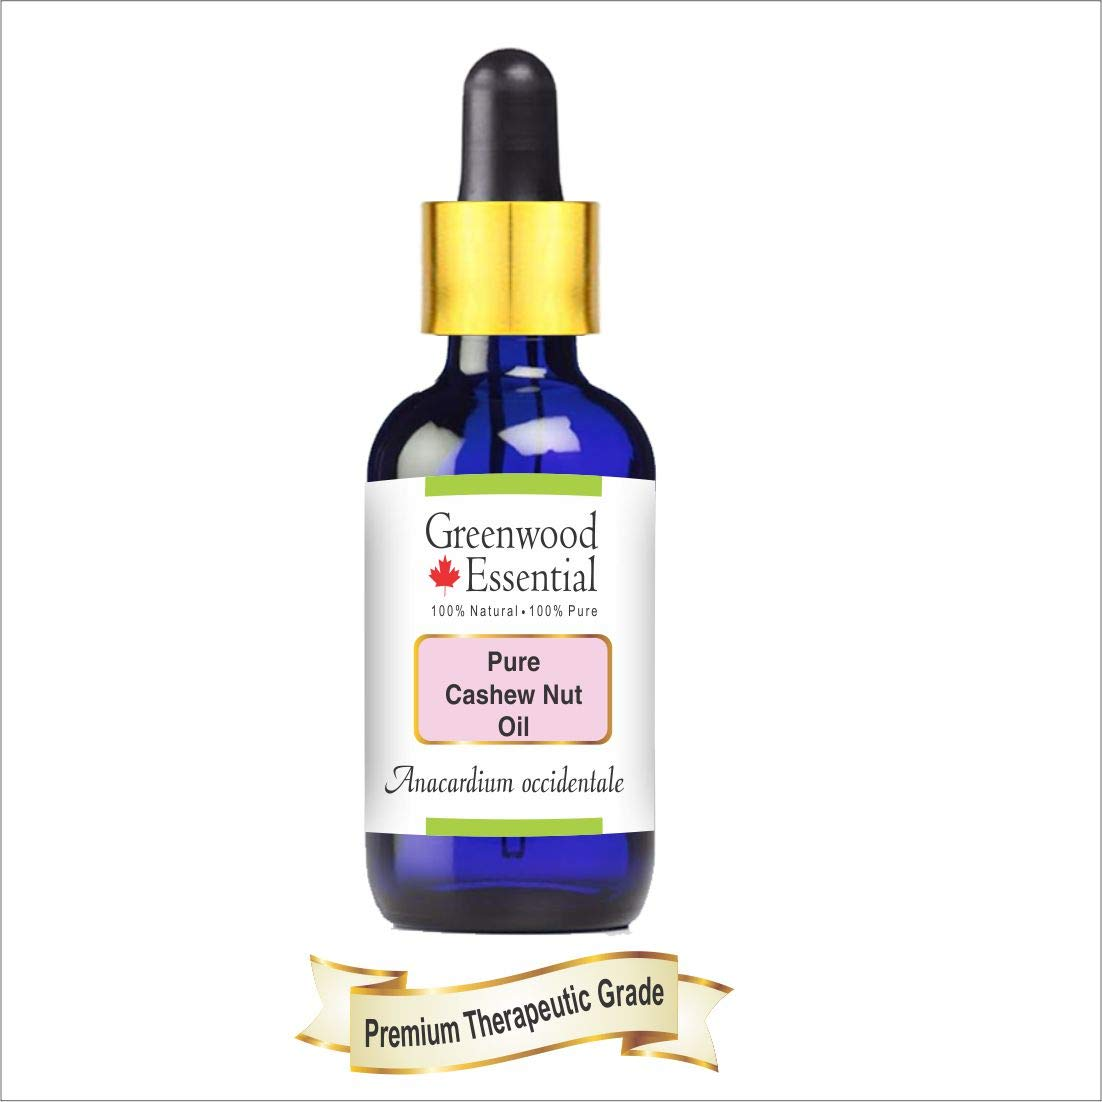 Greenwood Essential Pure Cashew Nut Oil (Anacardium occidentale) with Glass Dropper 100% Natural Therapeutic Grade 100ml (3.38 oz)